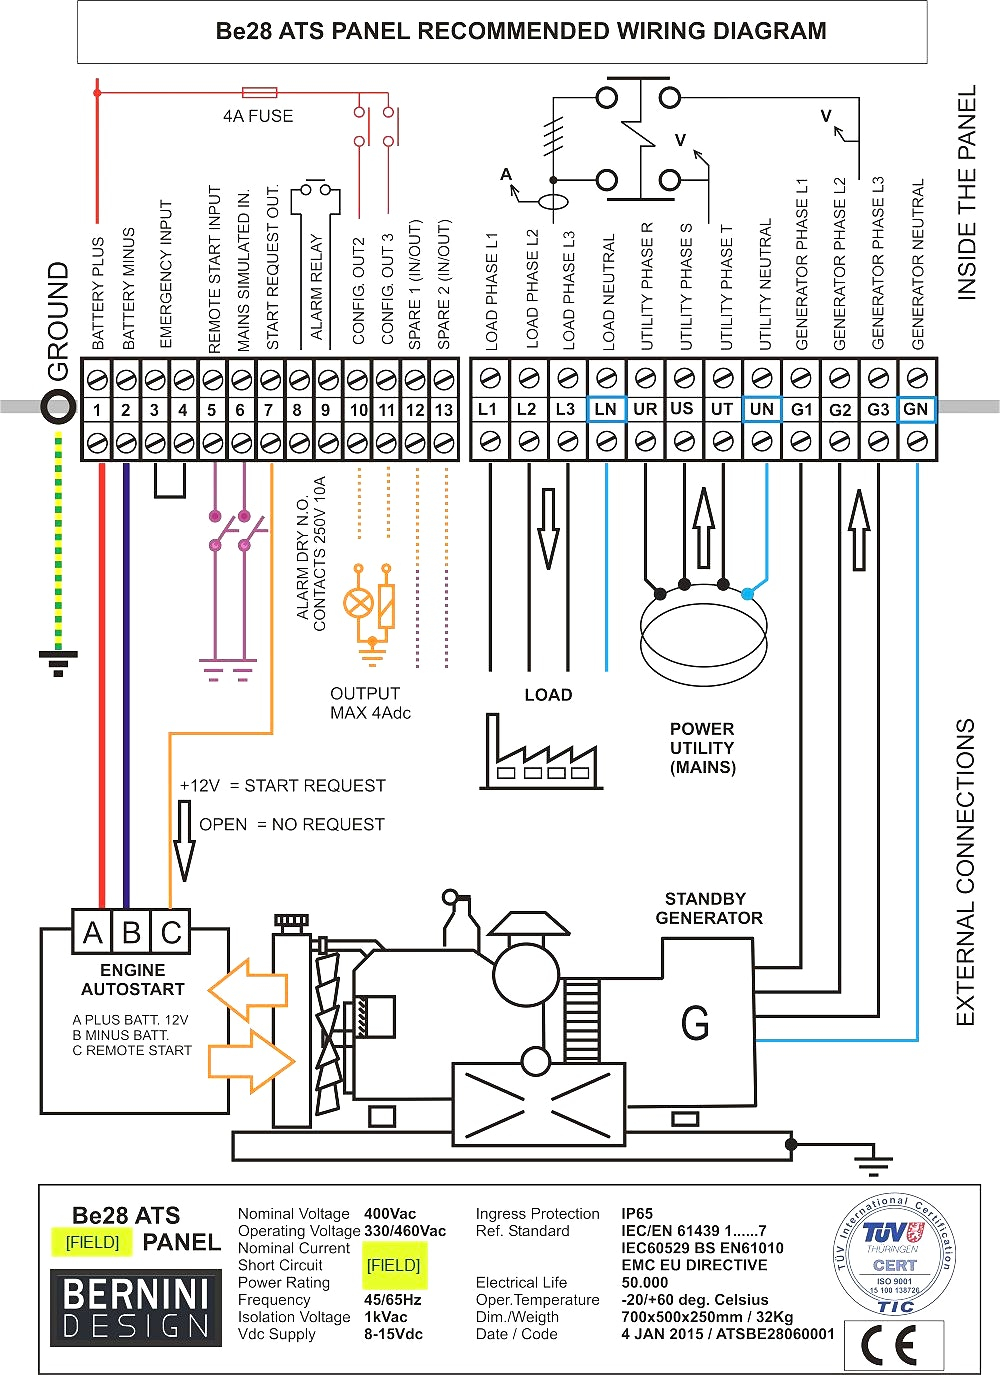 Wiring Diagram Pictures Detail: Name: generac 200 amp automatic transfer  switch ...